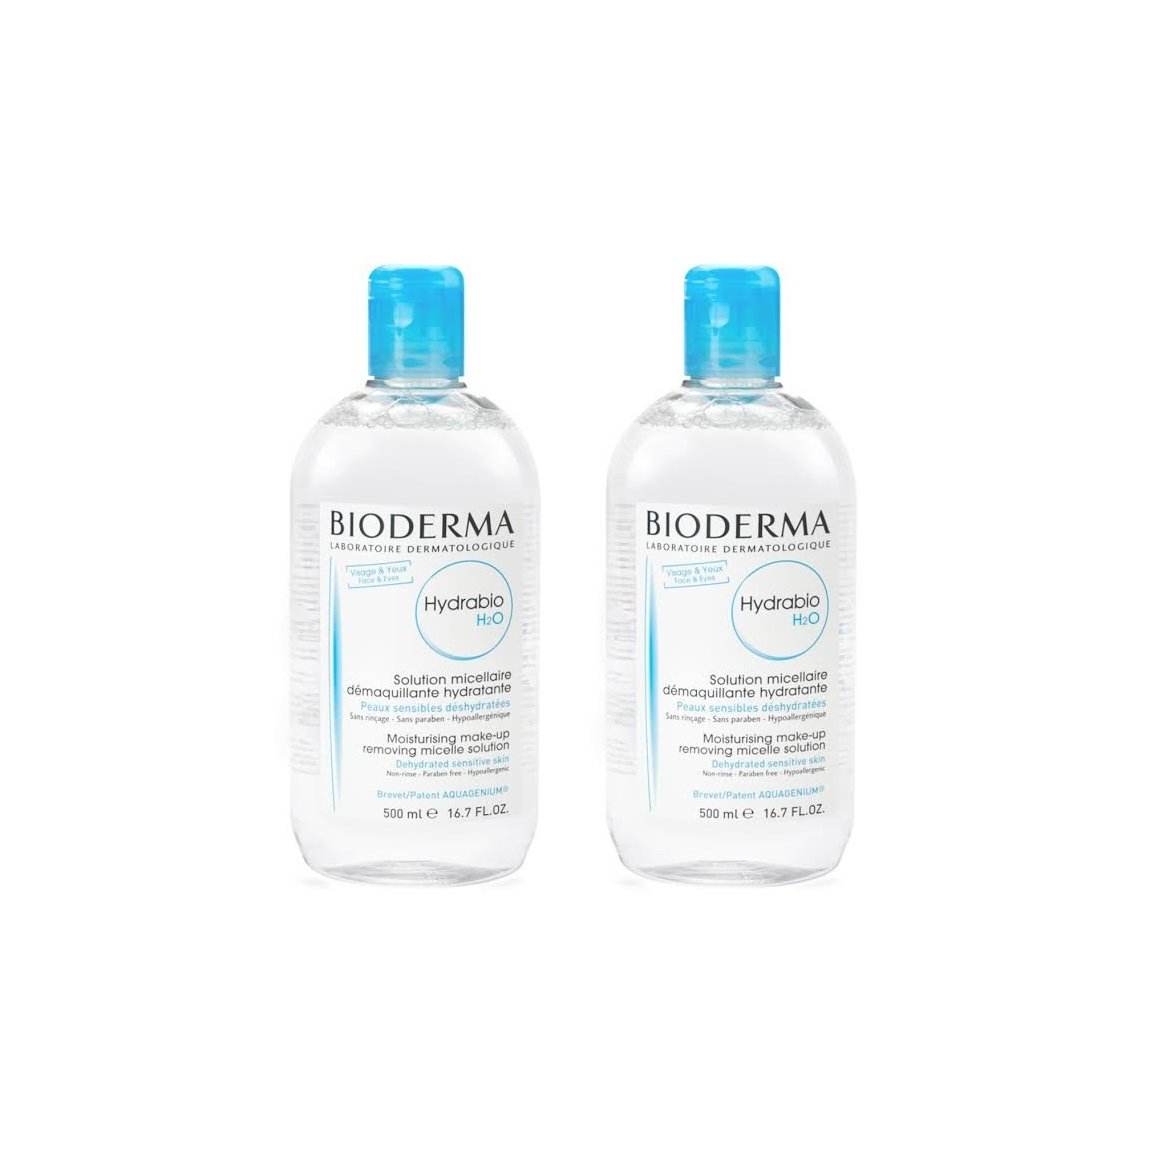 Bioderma Hydrabio H2O 500 ml Duo product smear.